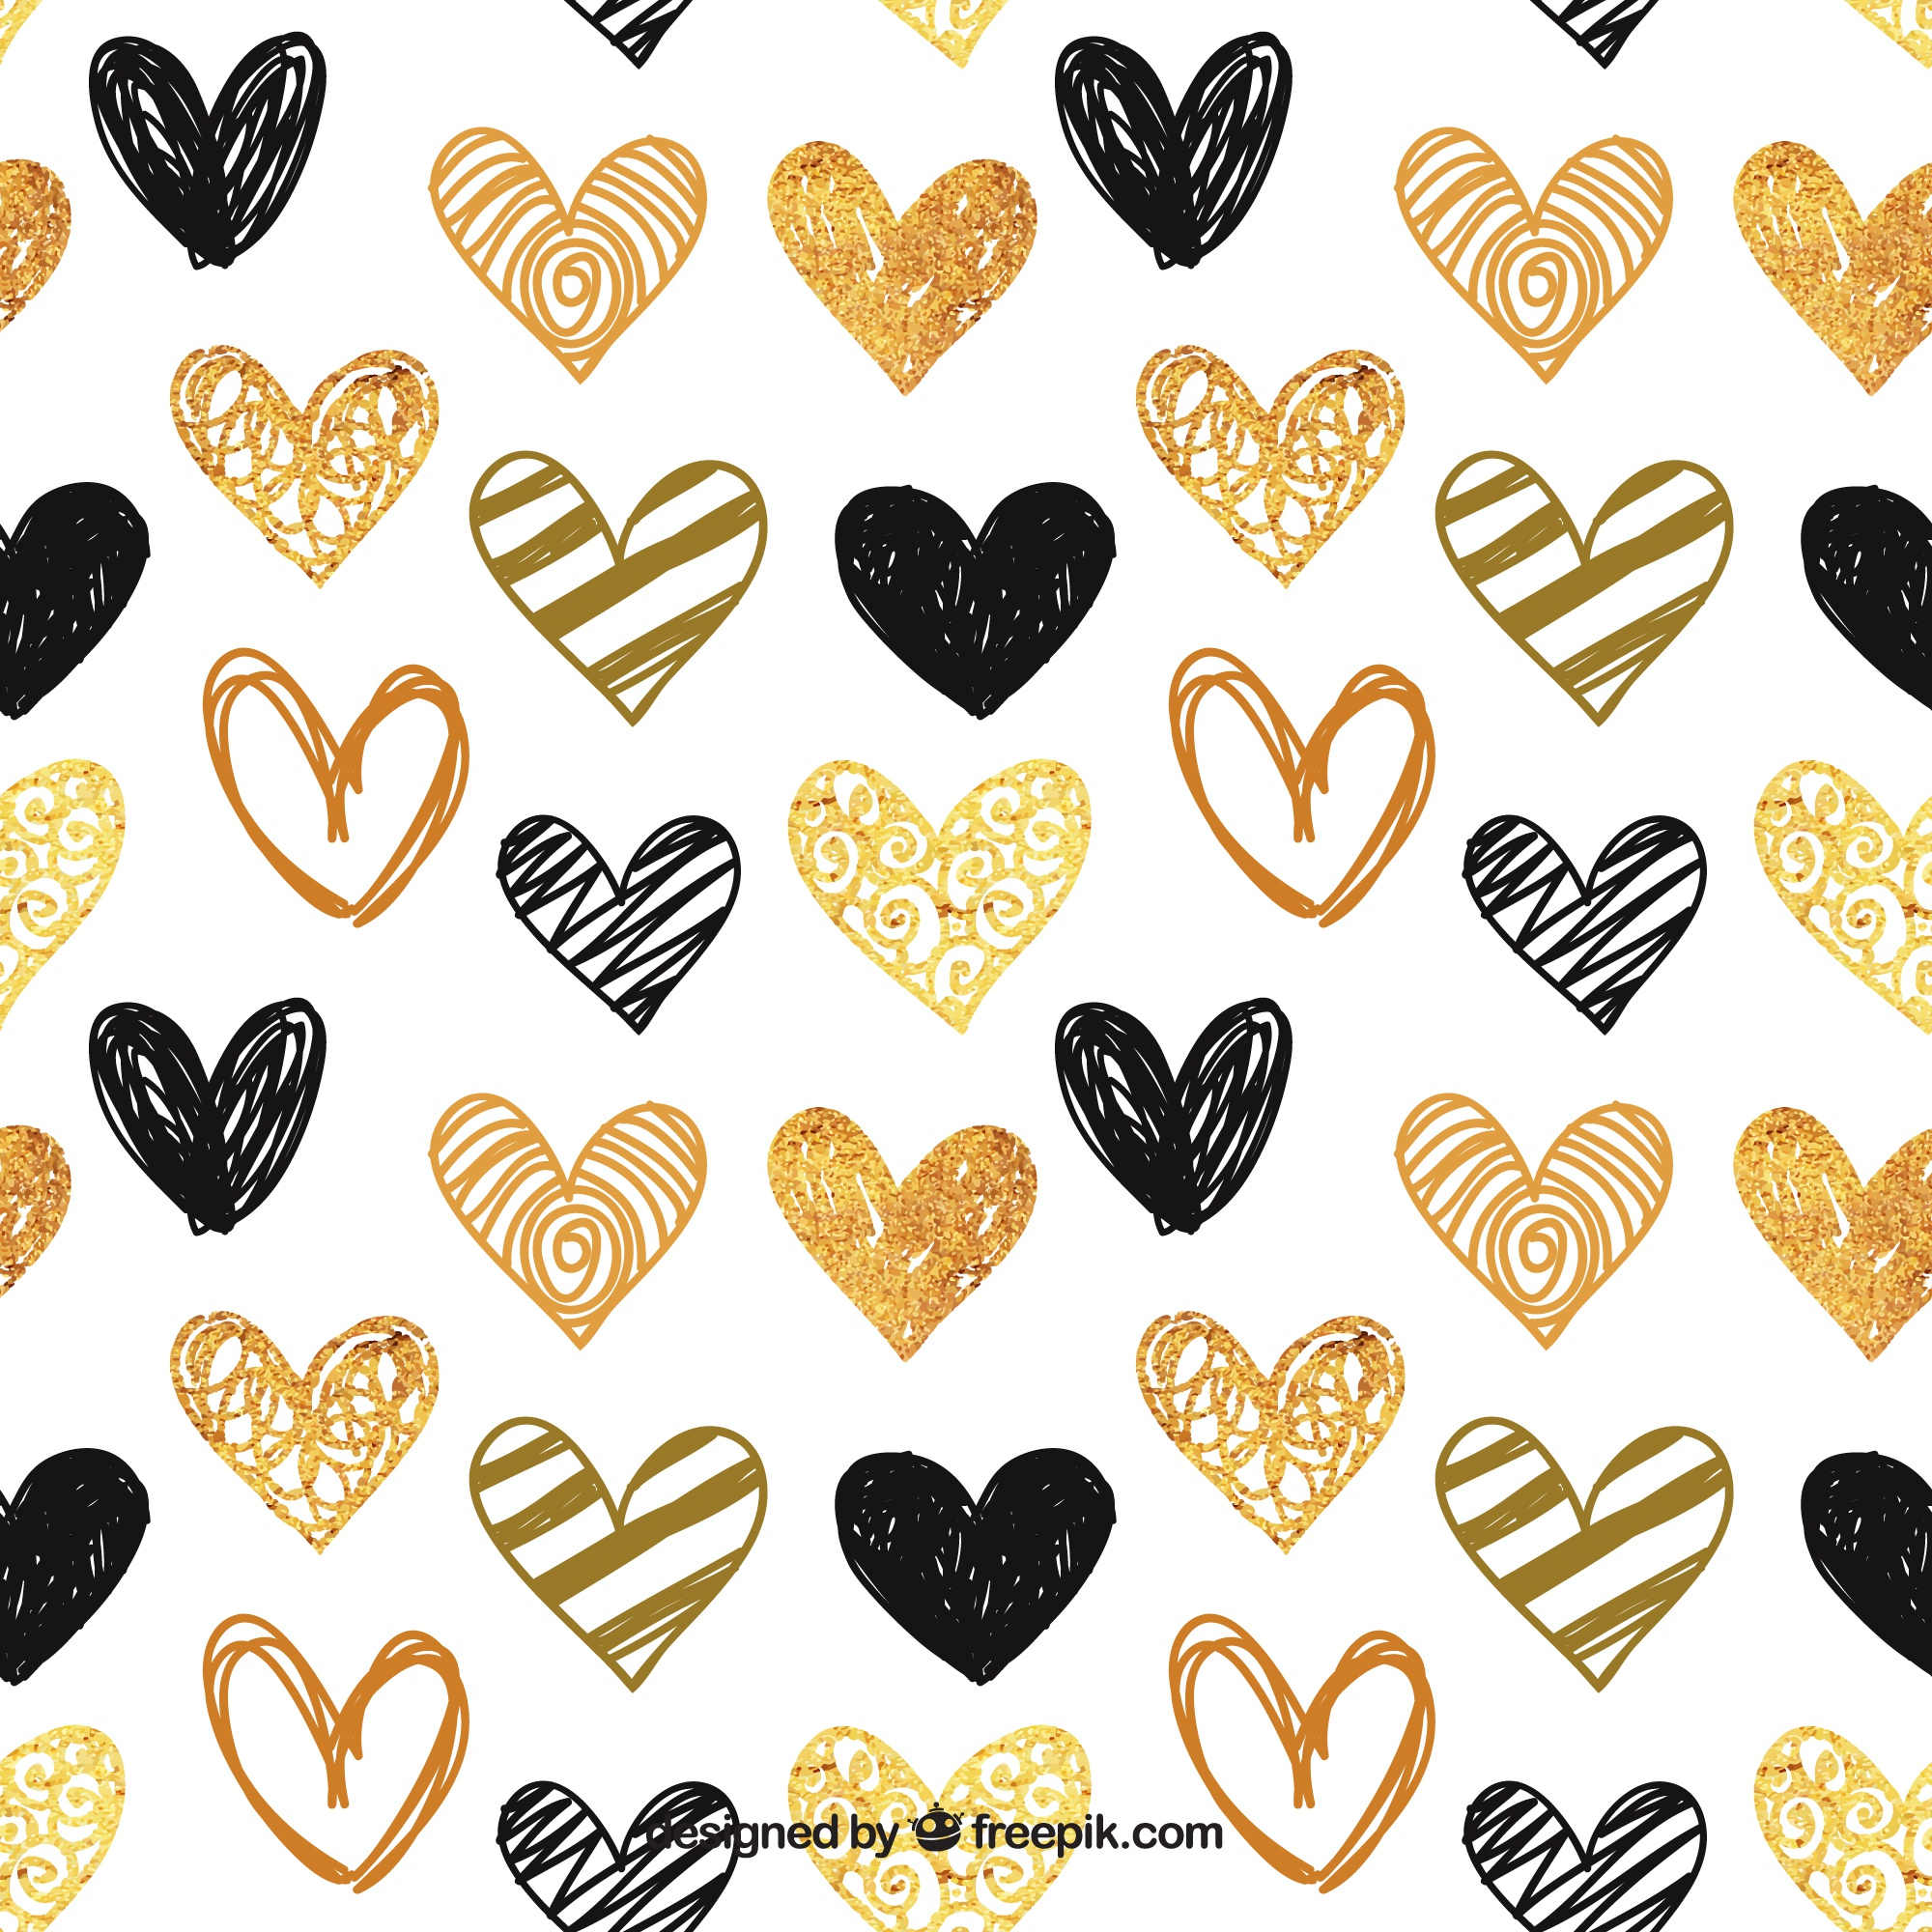 Pattern of hand-painted golden and black hearts